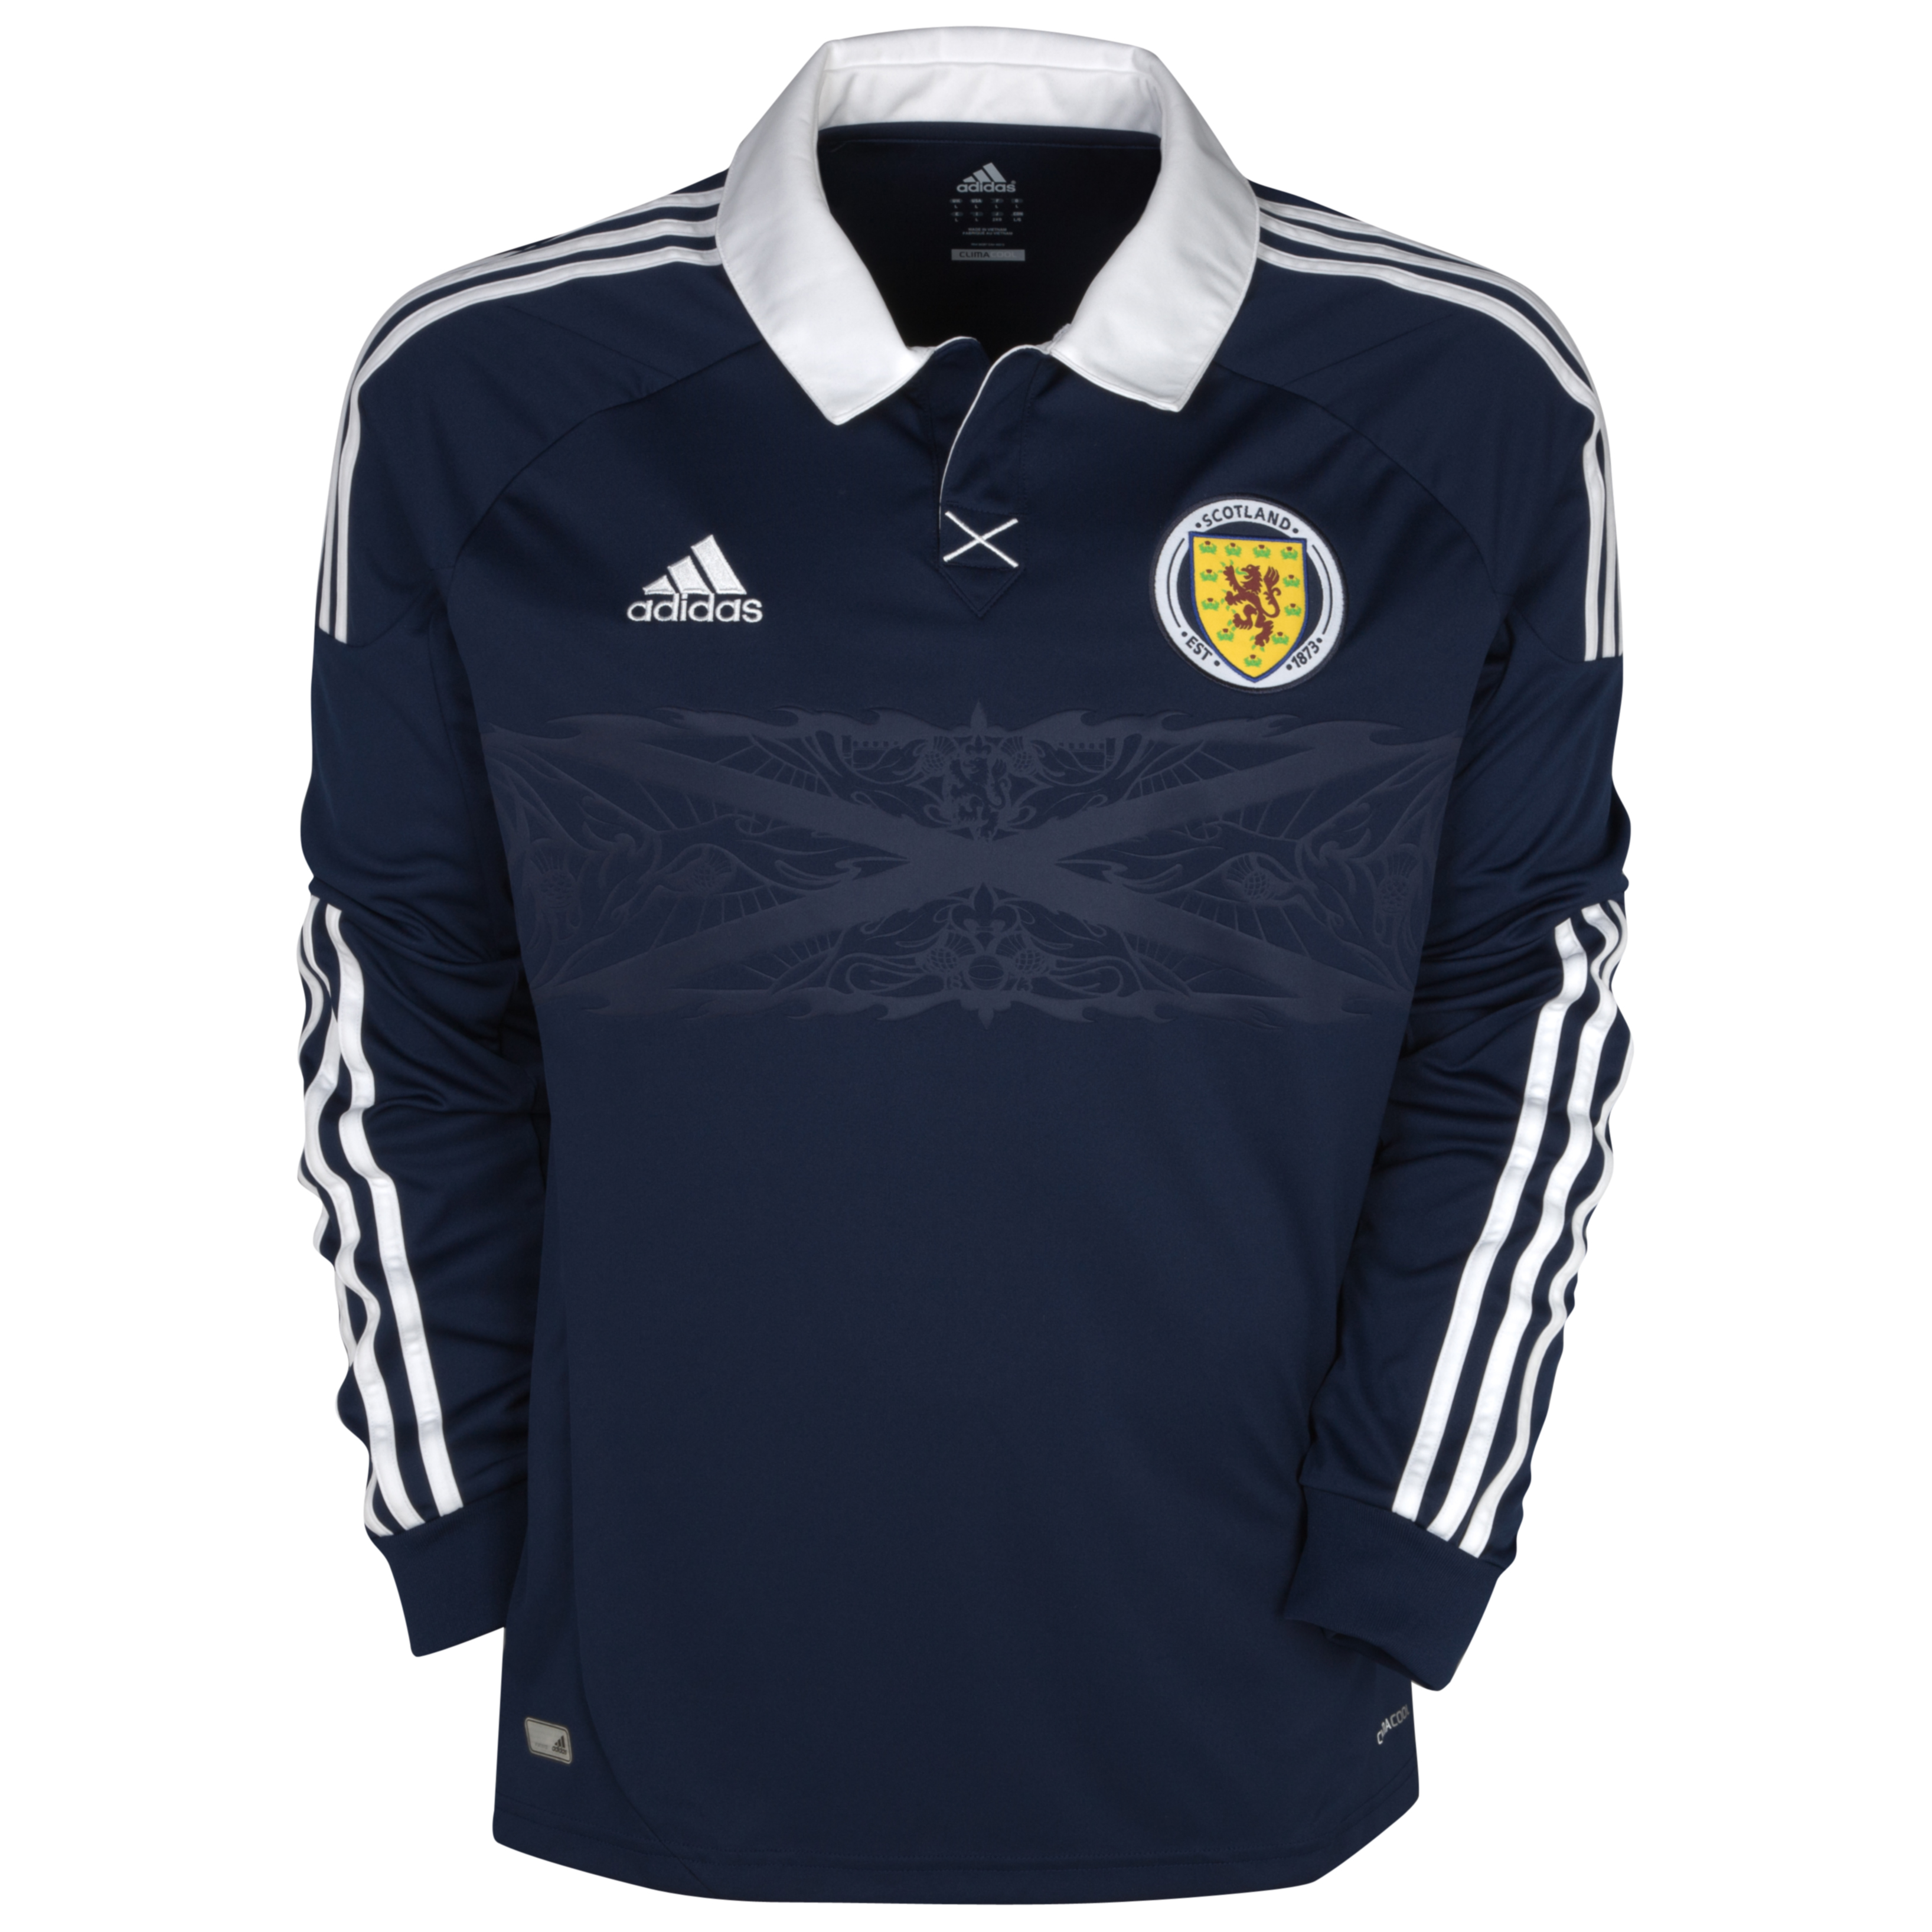 Scotland Home Shirt 2012/14 - Long Sleeved - Kids - Dark Indigo/White